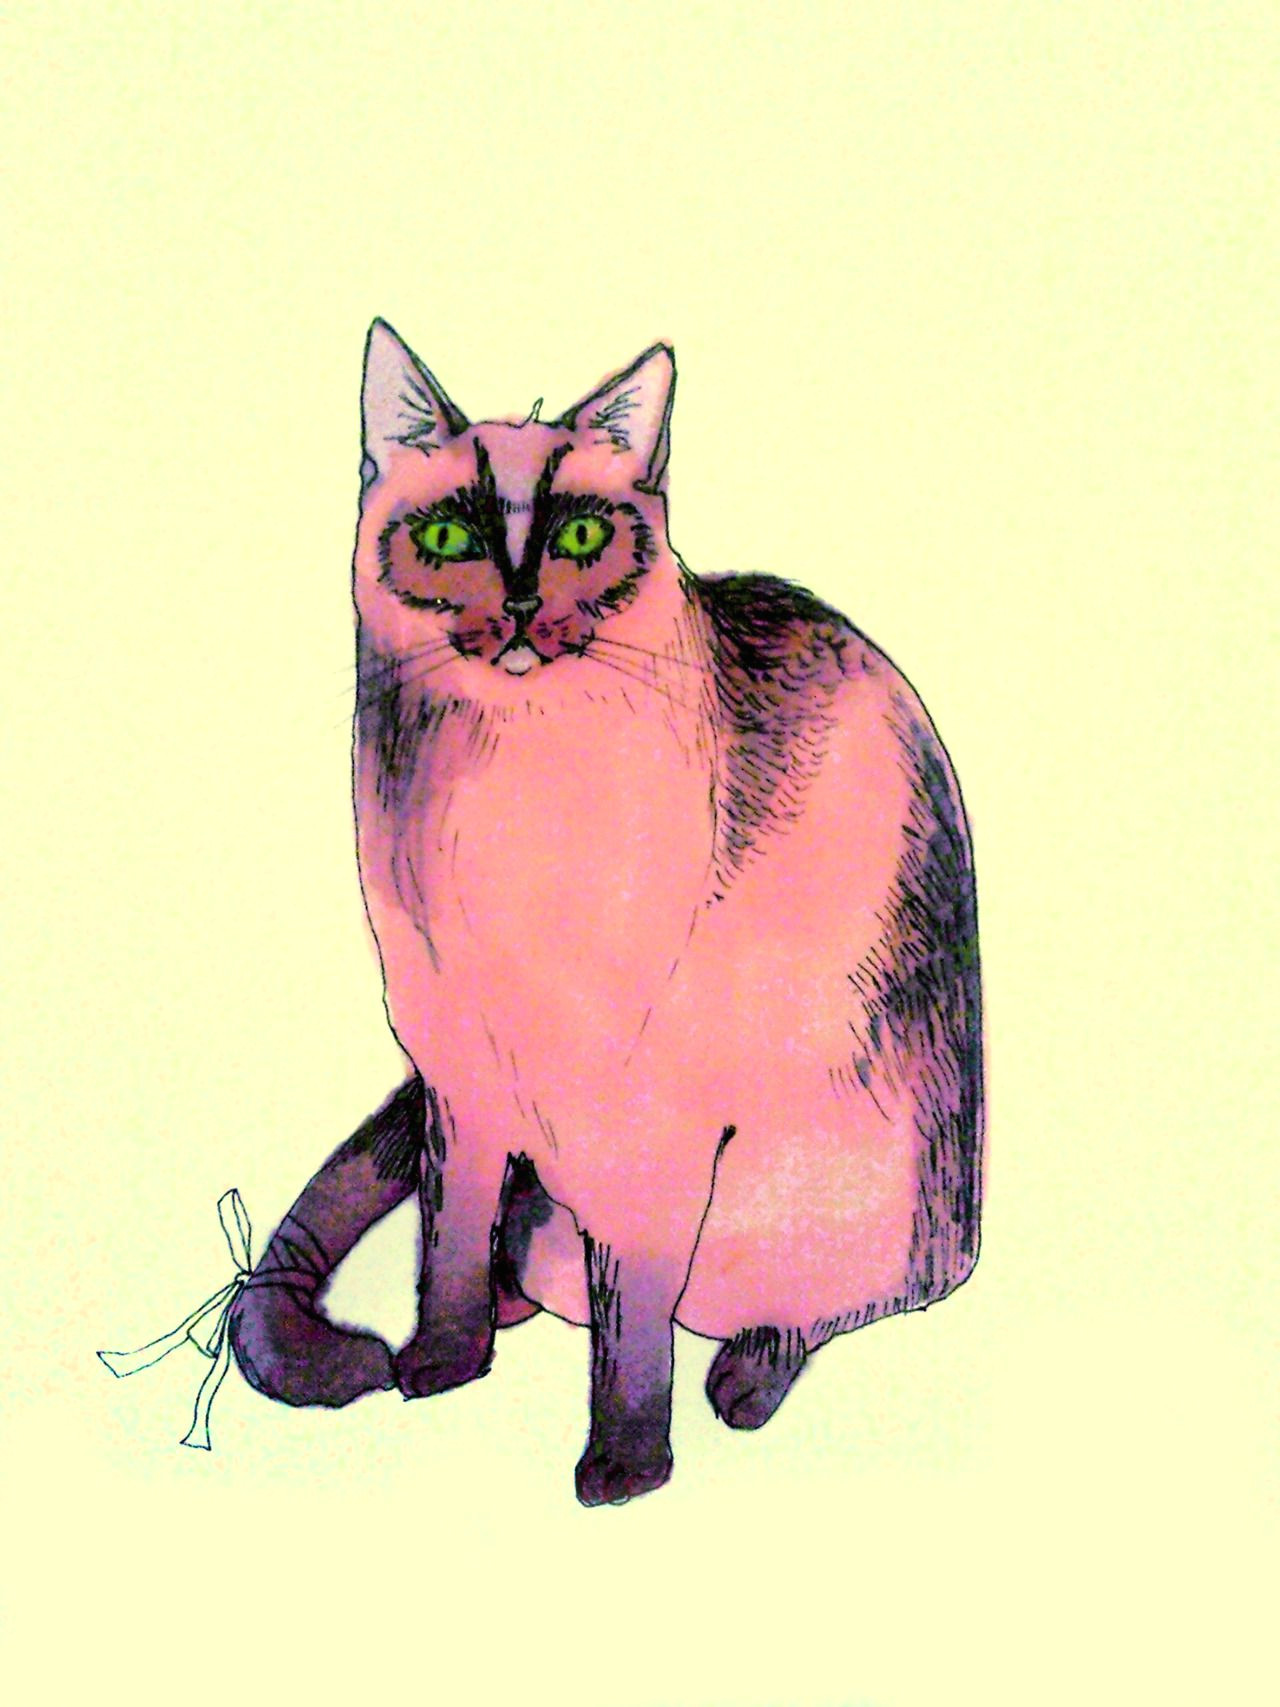 pink cat illustration sphynx cat pink cat cat paws cat drawing pretty